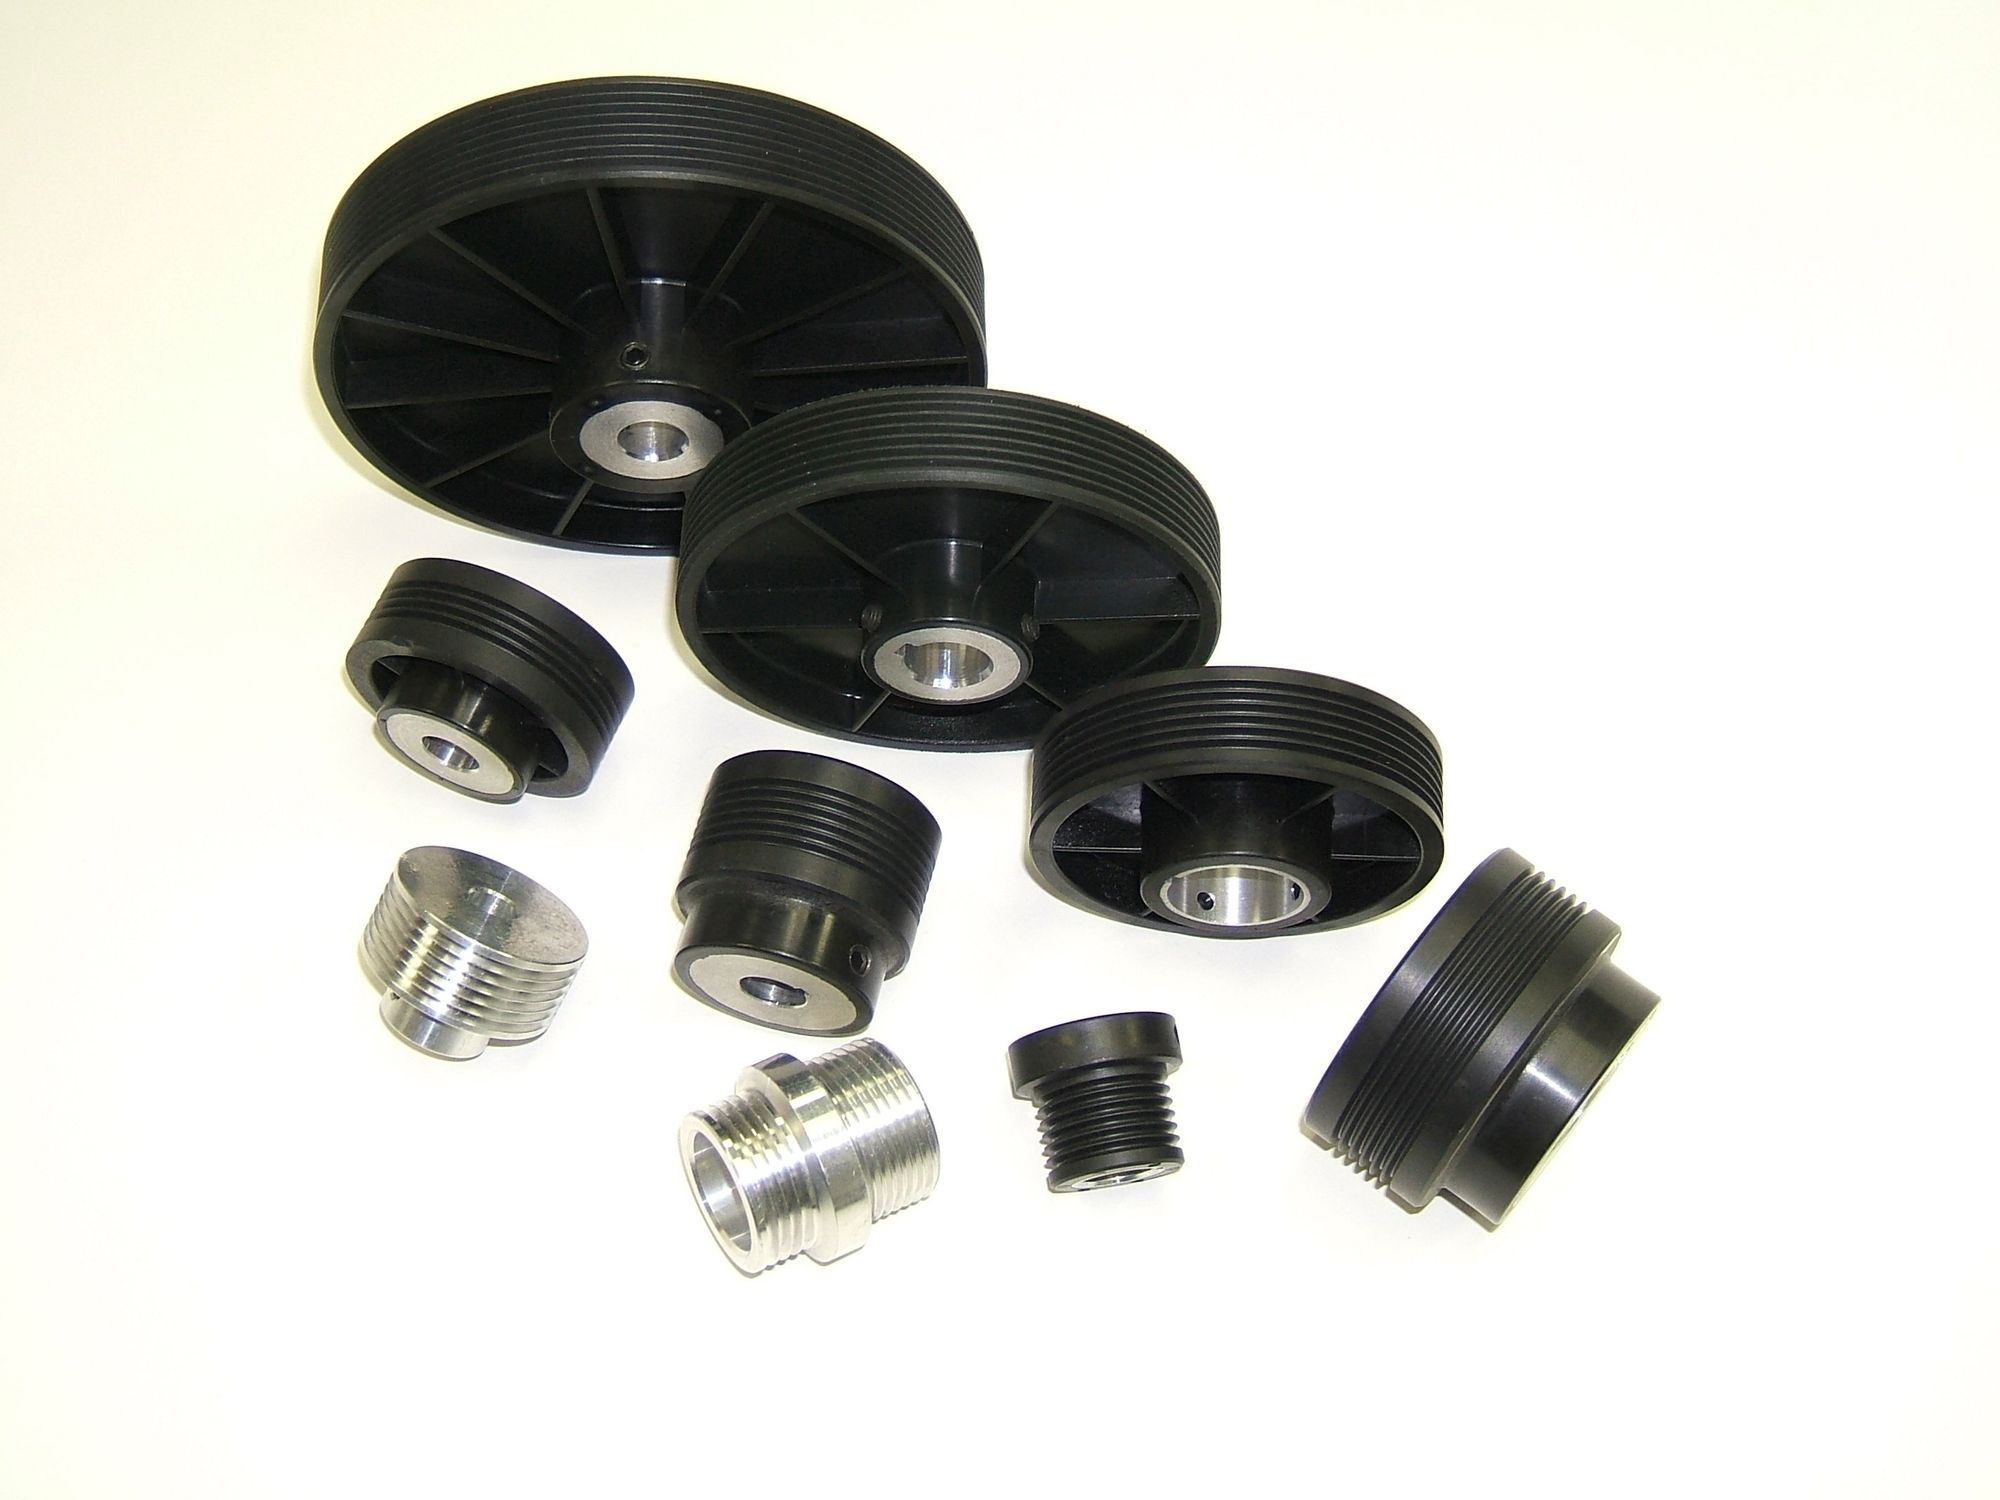 Groove pulley / ribbed belt - Torque Transmission